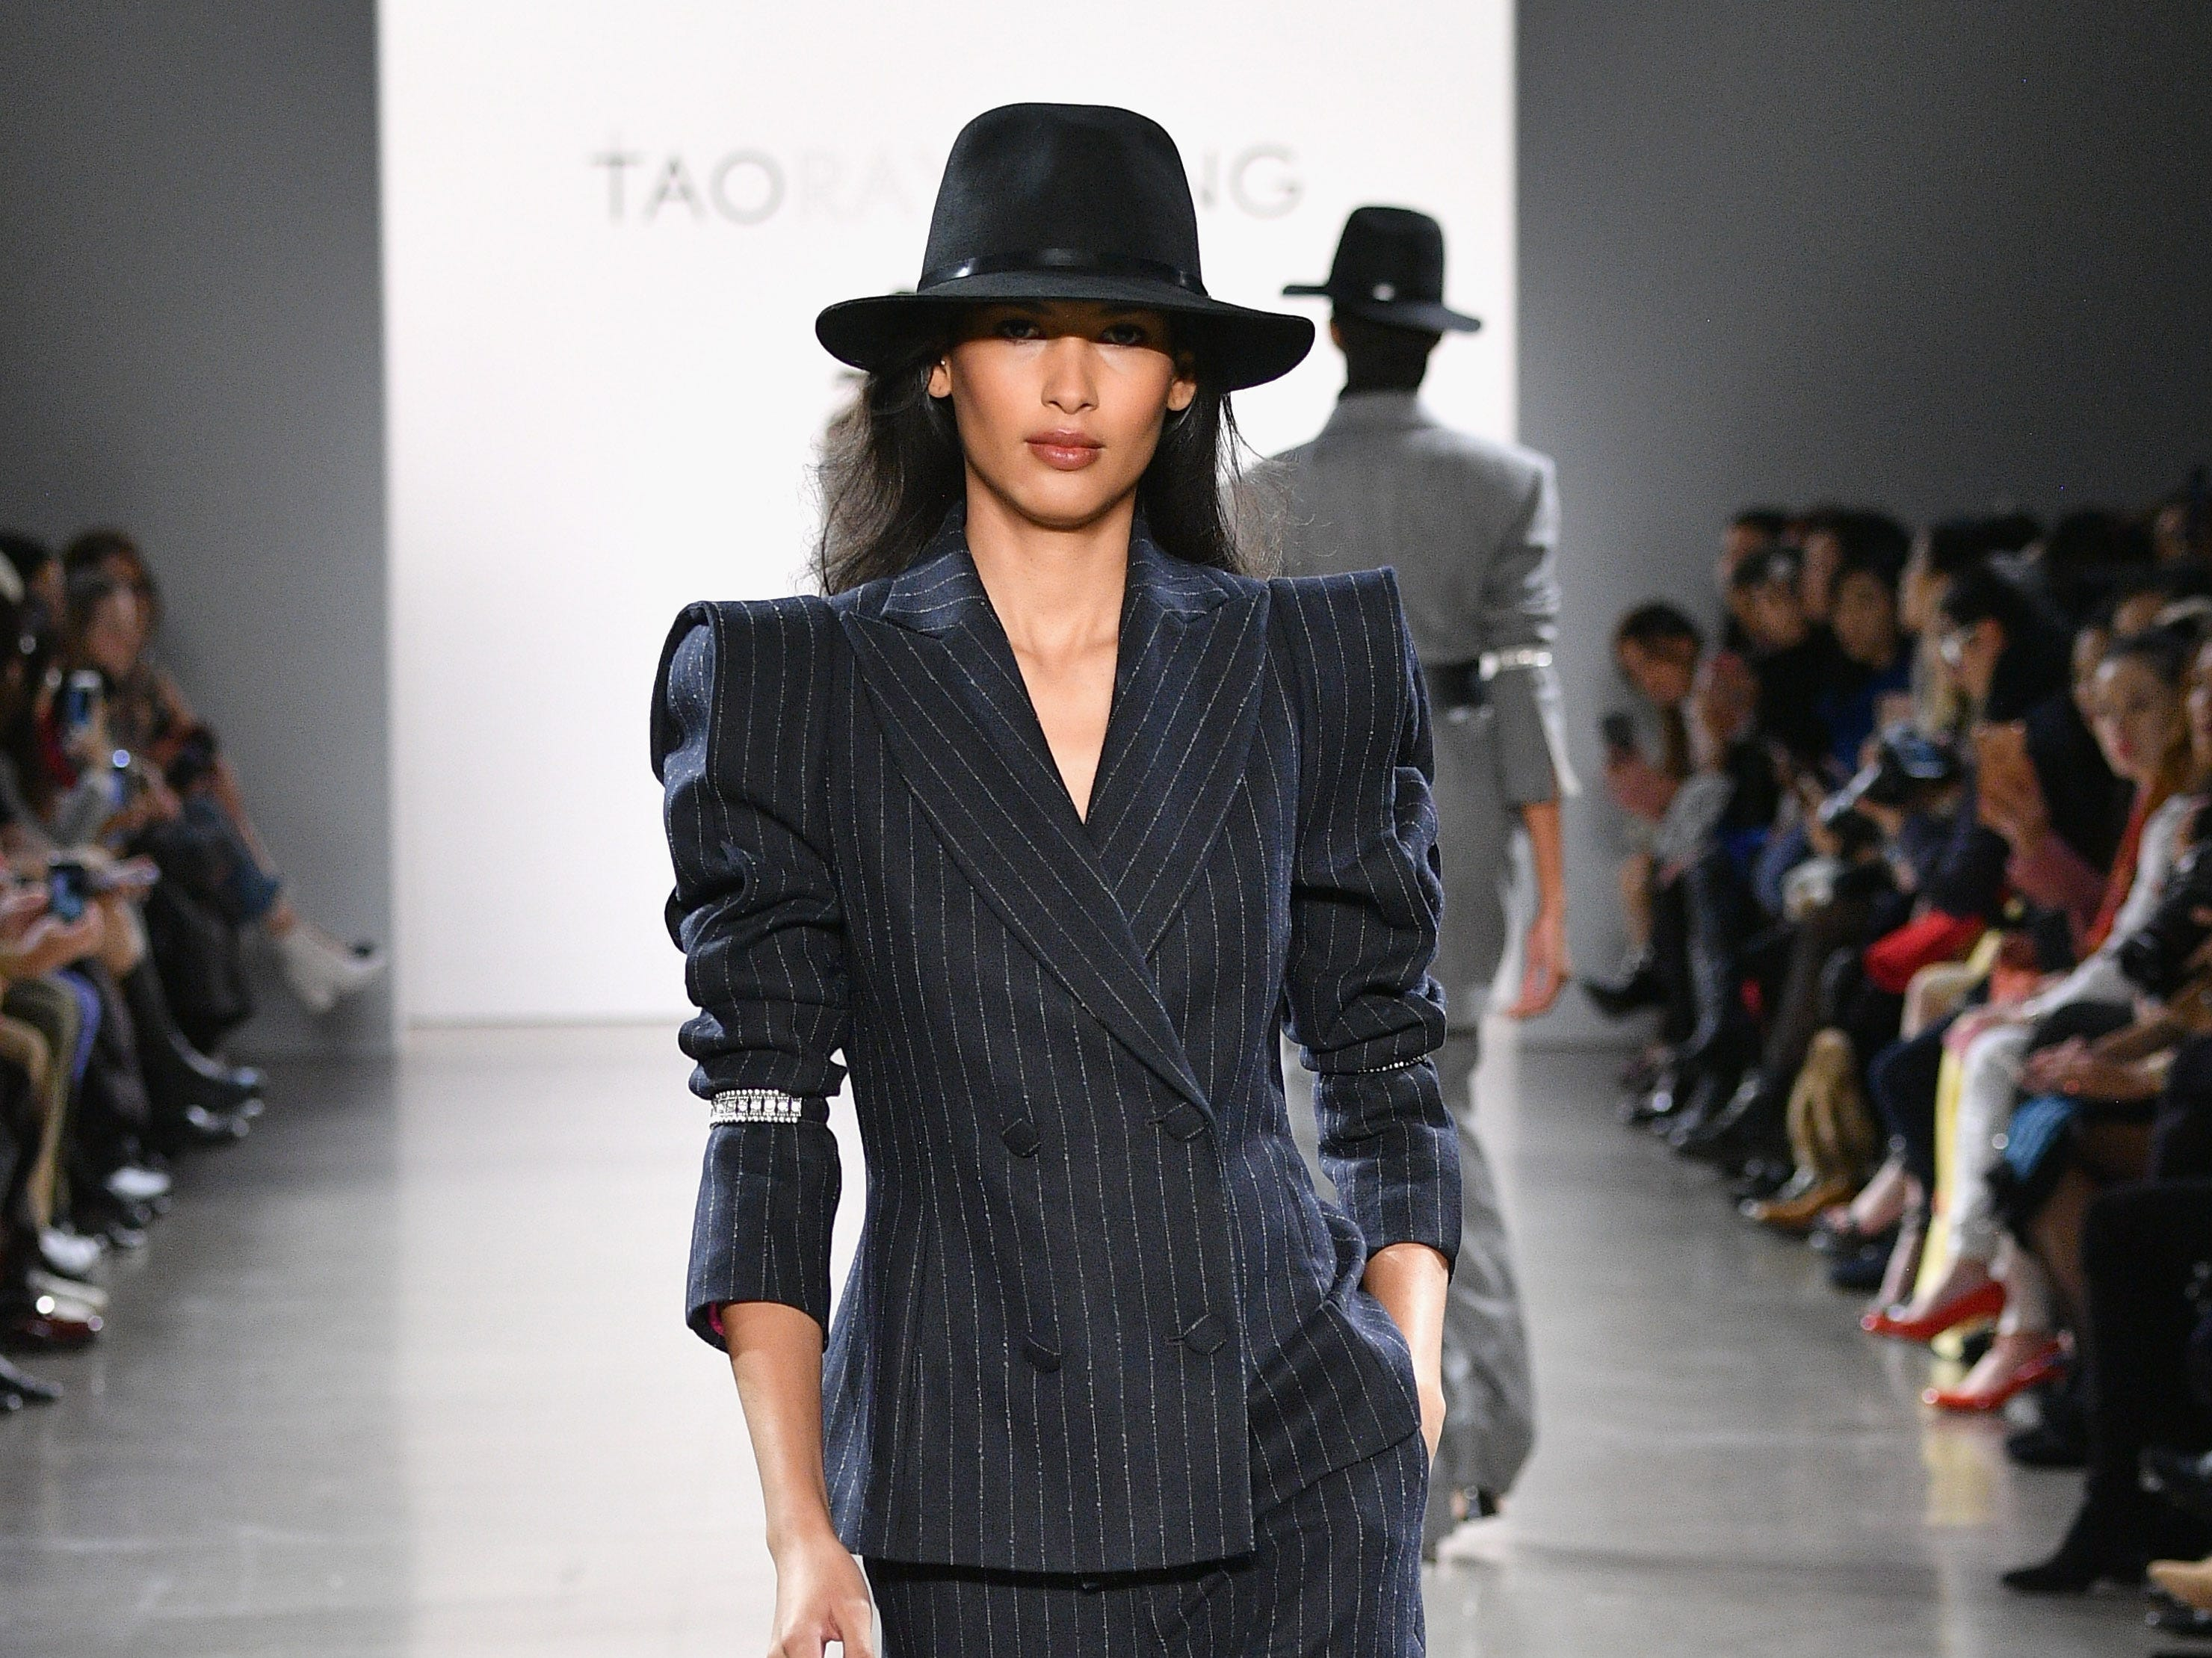 NEW YORK, NY - FEBRUARY 09:  A model walks the runway for the Taoray Wang fashion show during New York Fashion Week: The Shows at Gallery II at Spring Studios on February 9, 2019 in New York City.  (Photo by Dia Dipasupil/Getty Images for Taoray Wang) ORG XMIT: 775290801 ORIG FILE ID: 1096566422